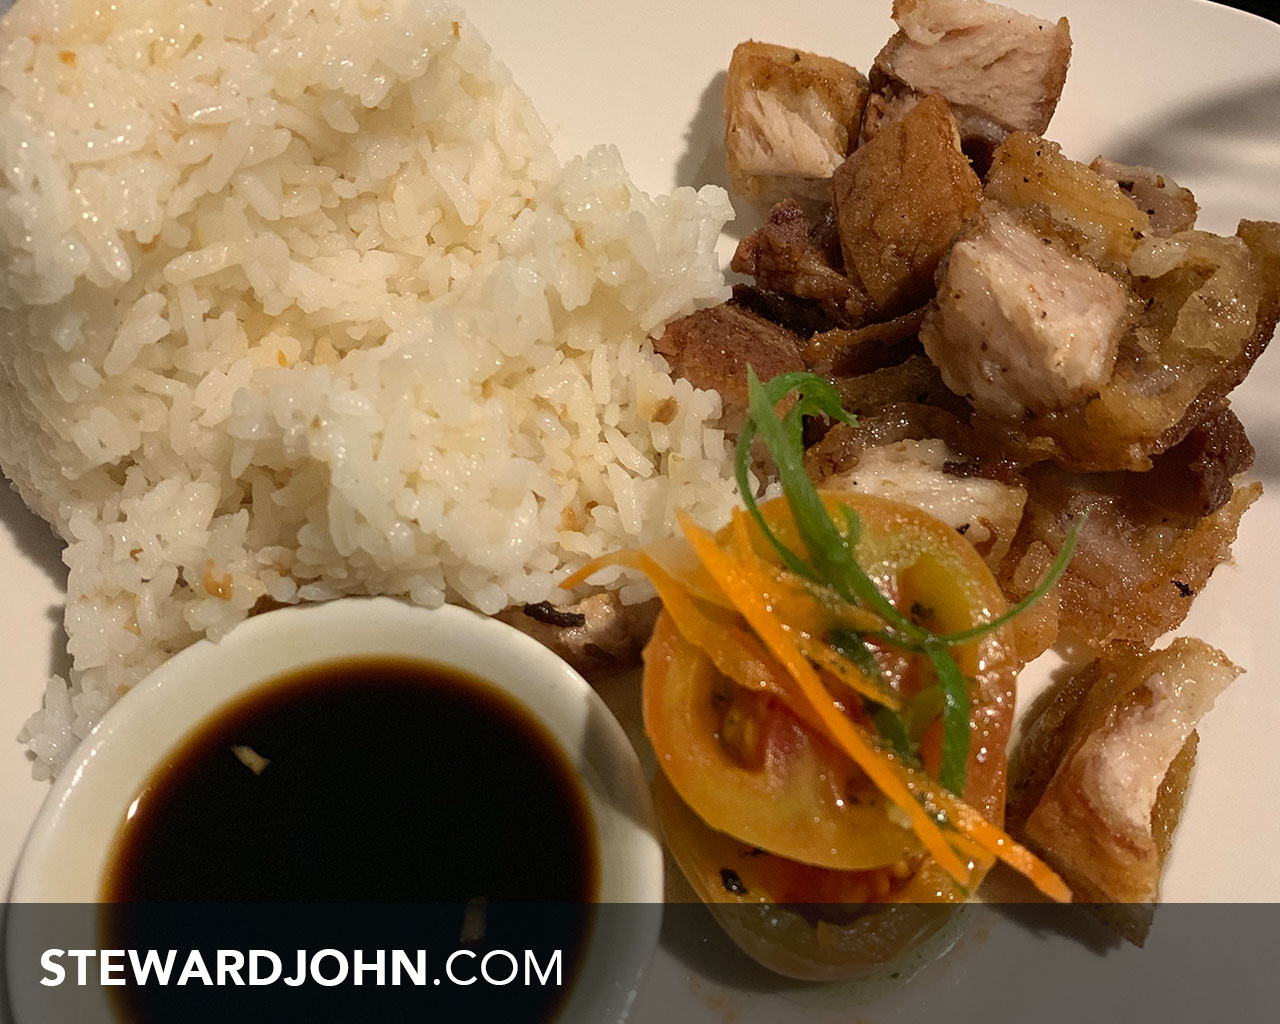 Crispy pork belly - PHP 132